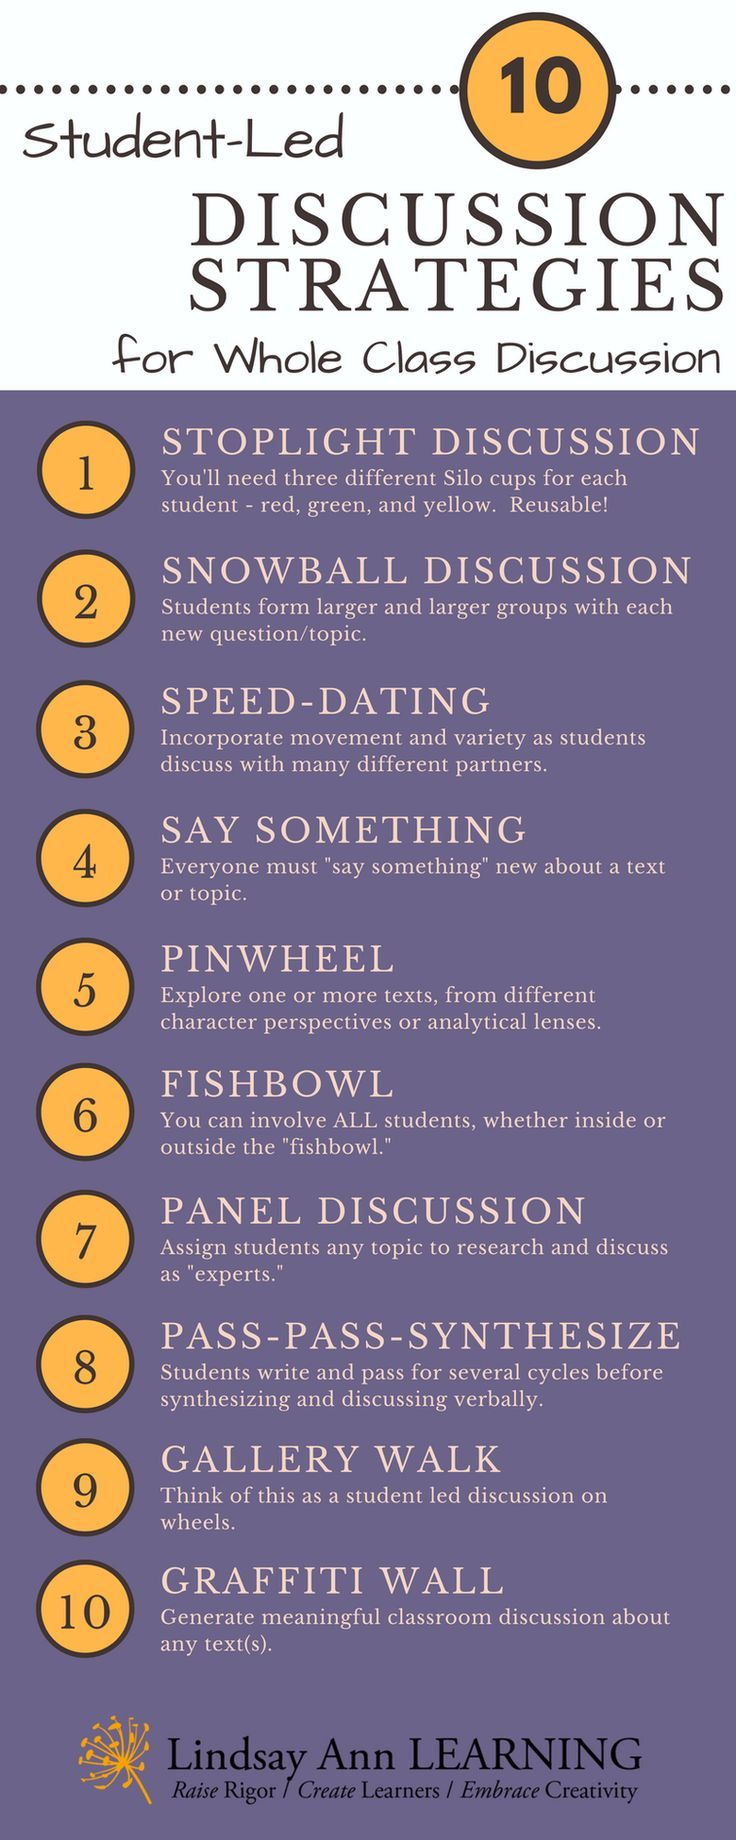 Classroom Discussion Strategies For Engaging All Students Hs